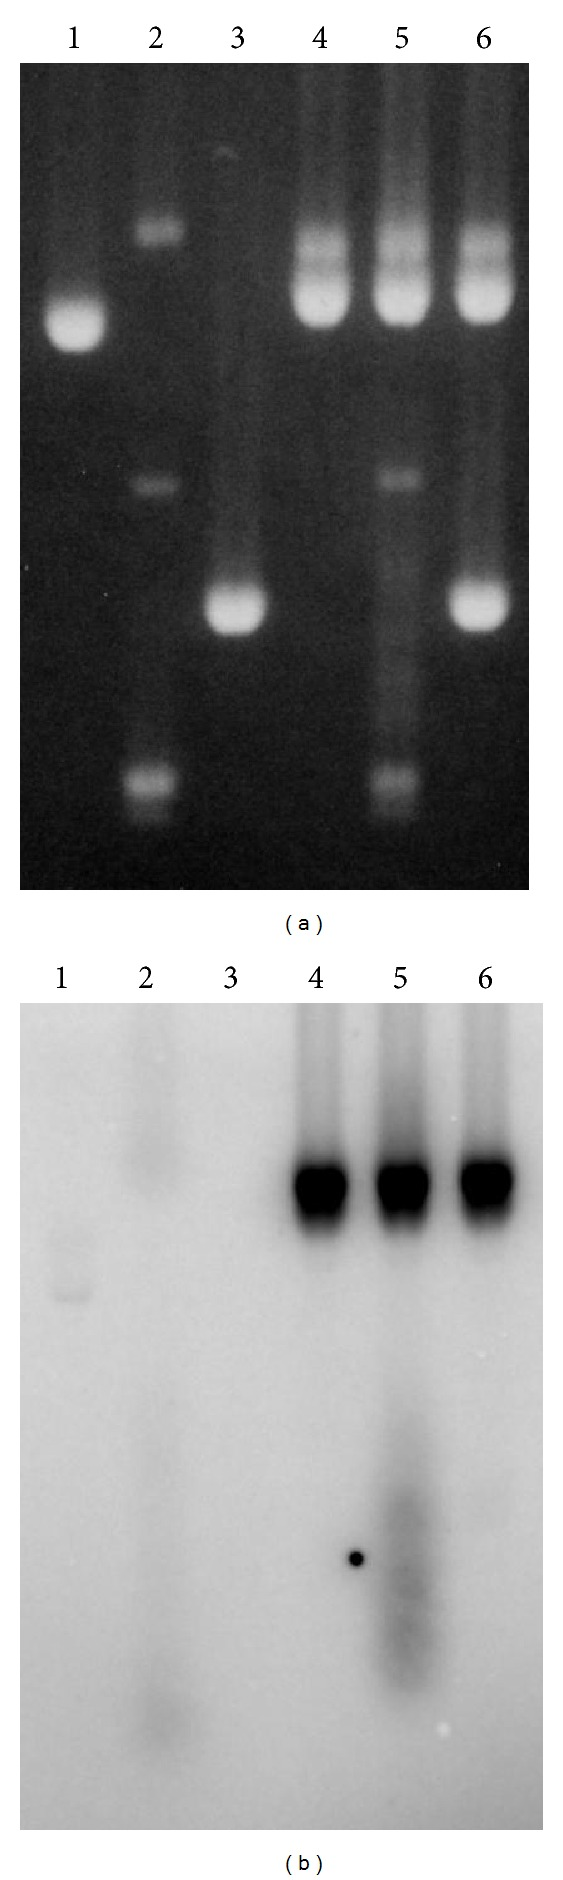 R-loop formation in trans detected by radiolabeling of the transcript. (a) Agarose gel stained with ethidium bromide and (b) autoradiogram of the same gel. Lane 1: pBluescript SK(−) linearized with Xba I; lane 2: supercoiled pHC624-(AGGAG) 22 ; lane 3: pHC624-(AGGAG) 22 linearized with Sca I; lane 4: pSK-(AGGAG) 22 linearized with Xba I; lane 5: linearized pSK-(AGGAG) 22 and supercoiled pHC624-(AGGAG) 22 ; and lane 6: linearized pSK-(AGGAG) 22 and linearized pHC624-(AGGAG) 22 . All DNAs were incubated in the transcription mixture with T7 RNA polymerase.